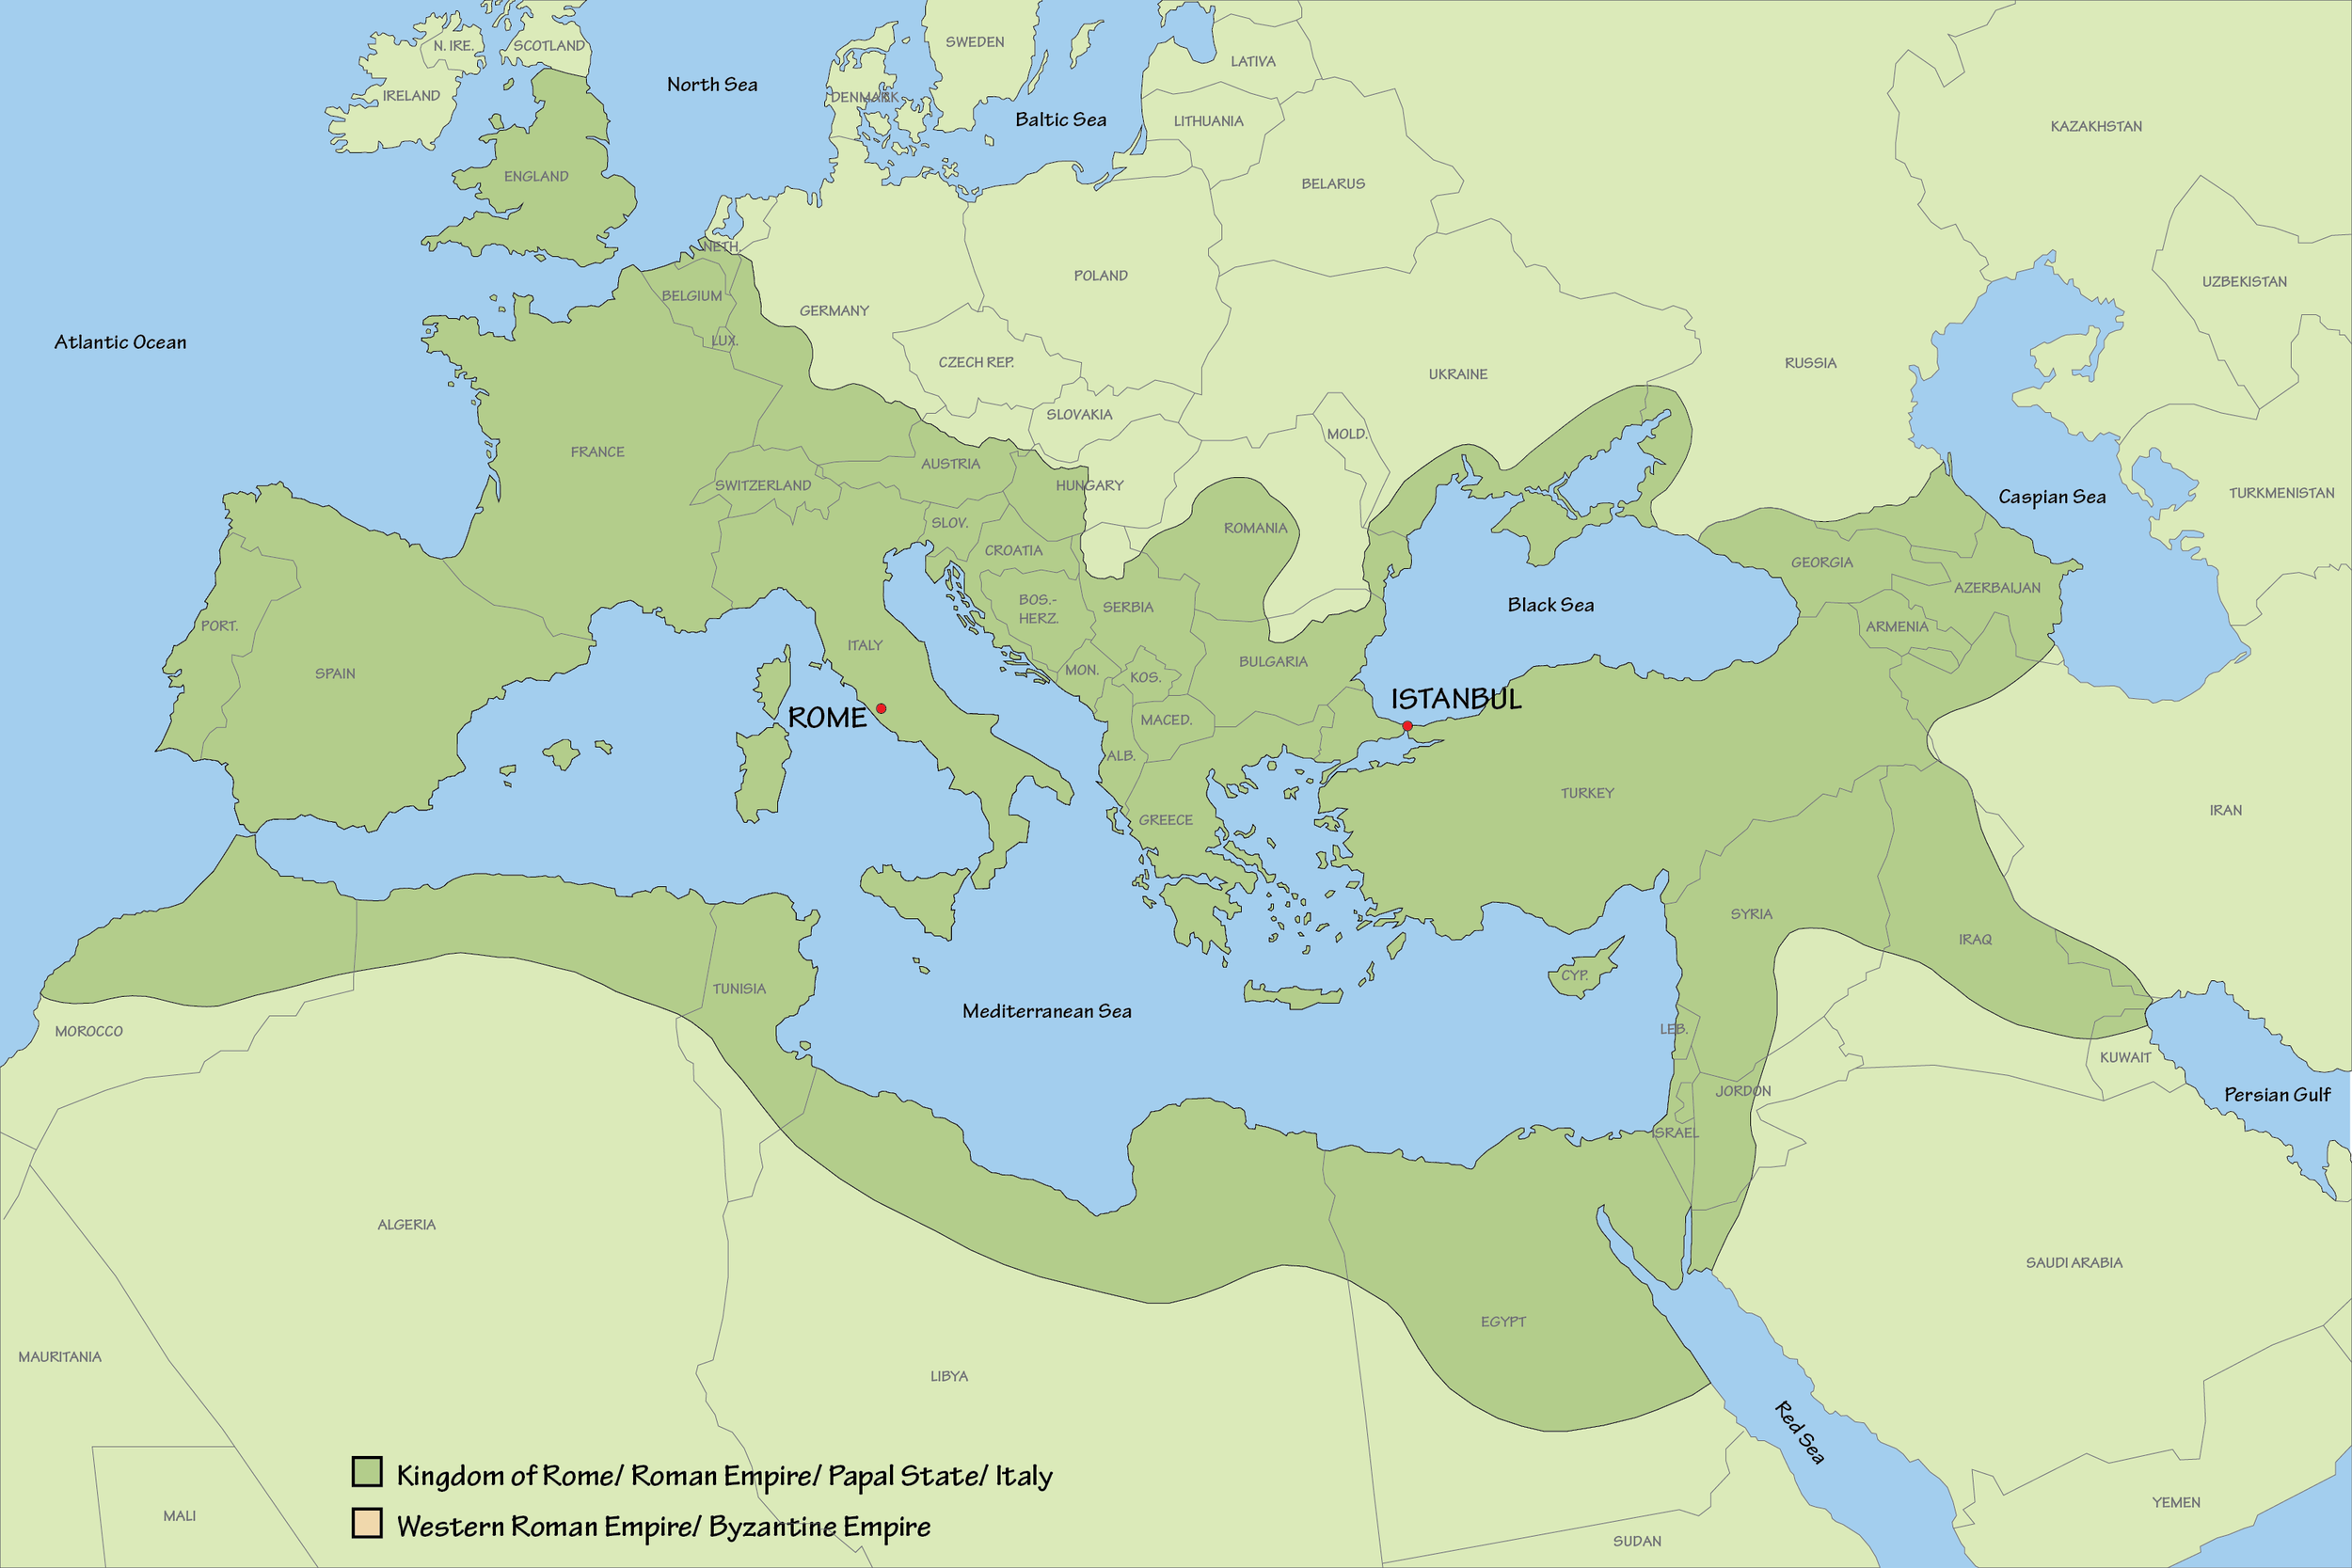 Exapnsion of Roman Empire Diagram_09-01.png